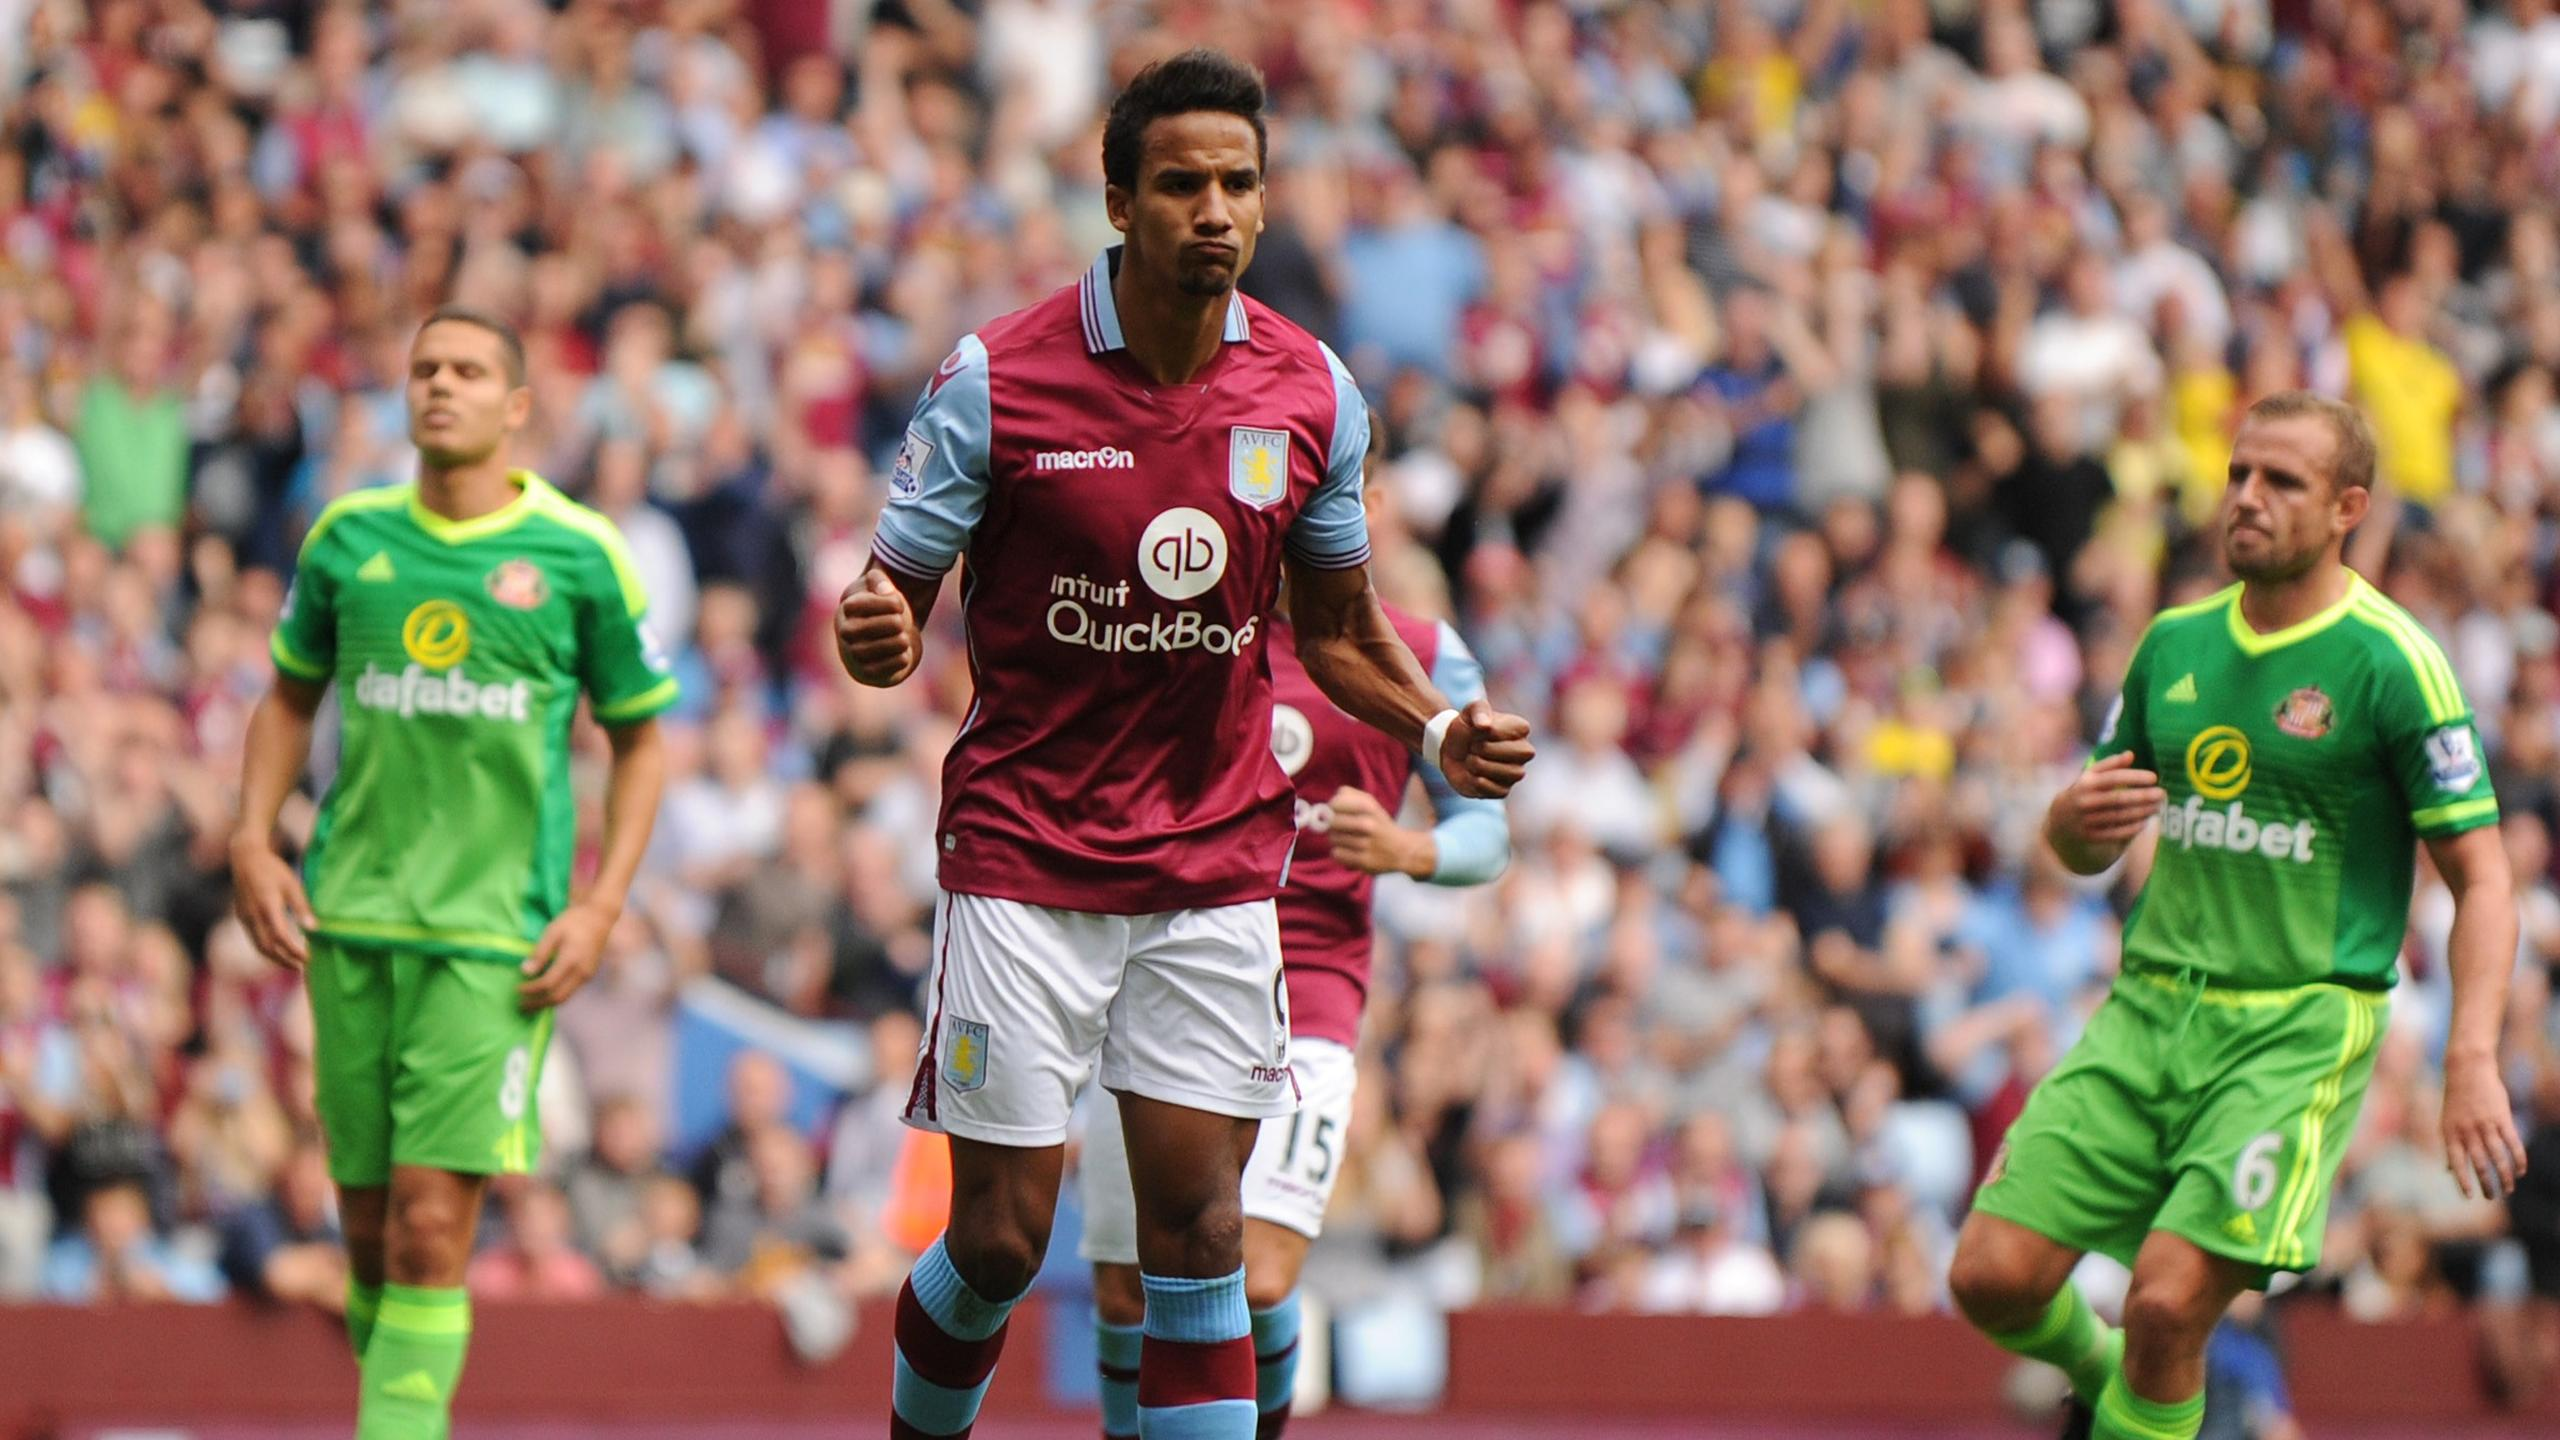 Aston Villa's Scott Sinclair celebrates